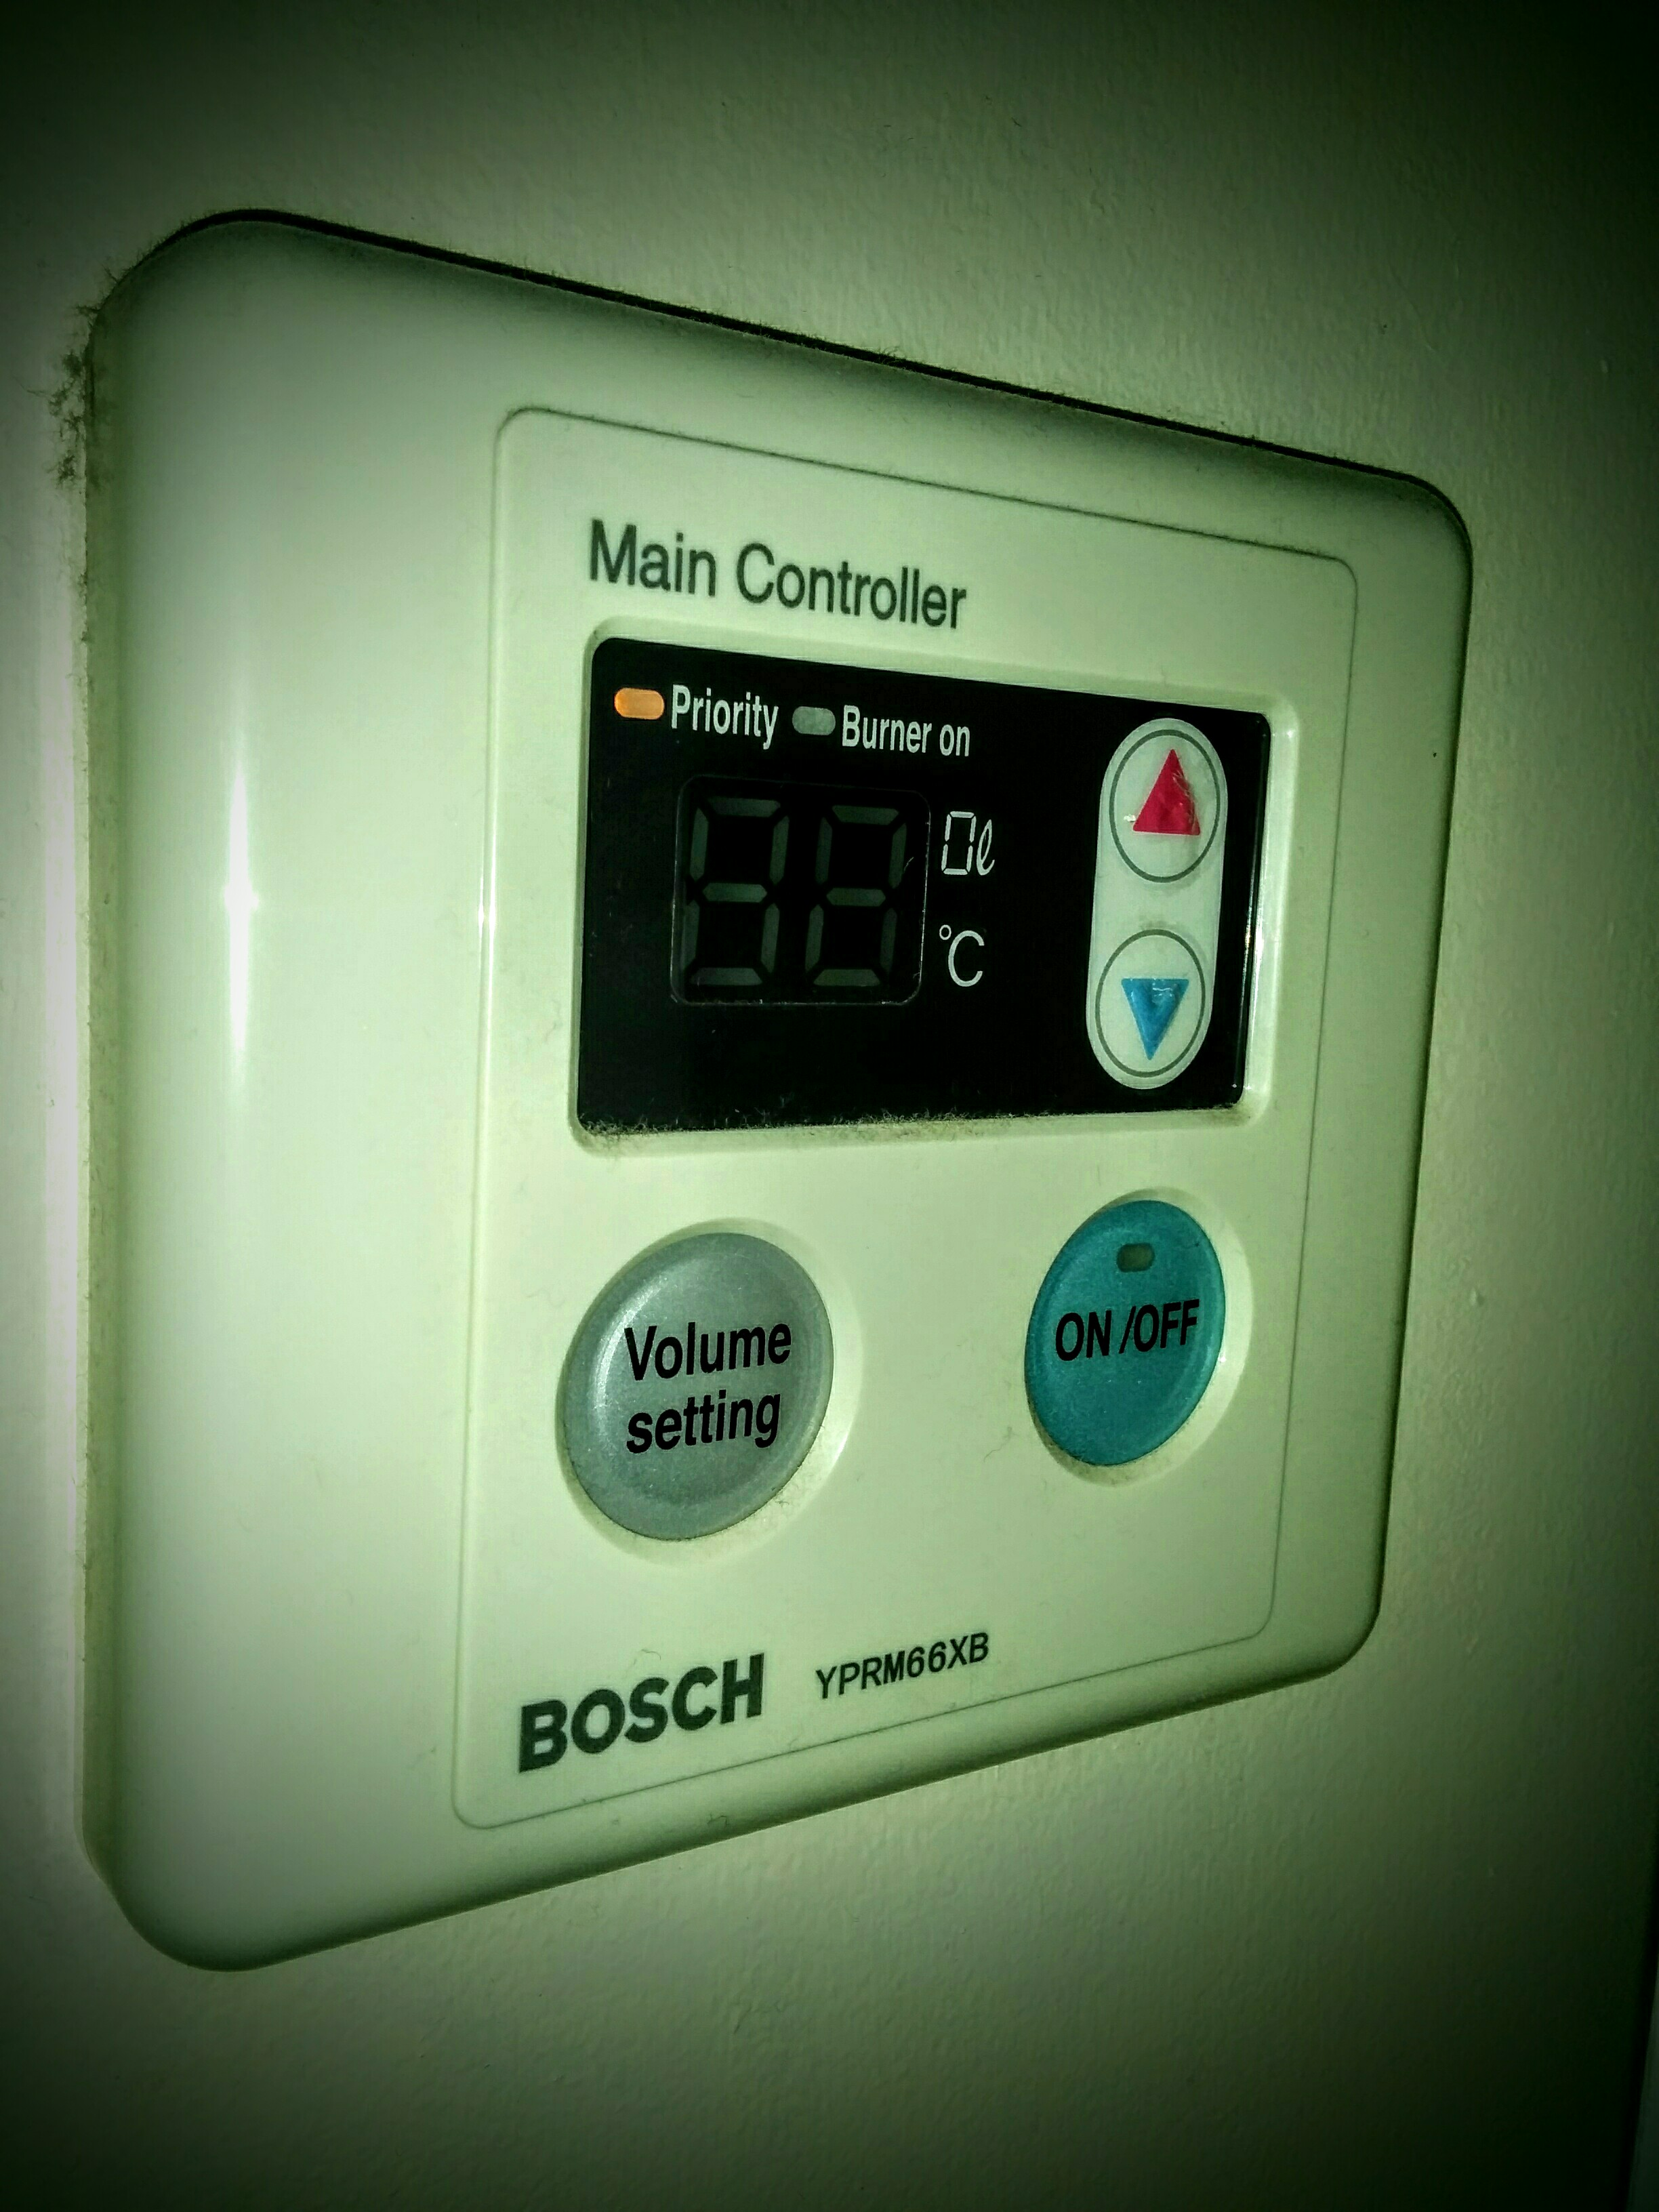 How To Repair Bosch Hot Water Controller Like The Yprm66xb